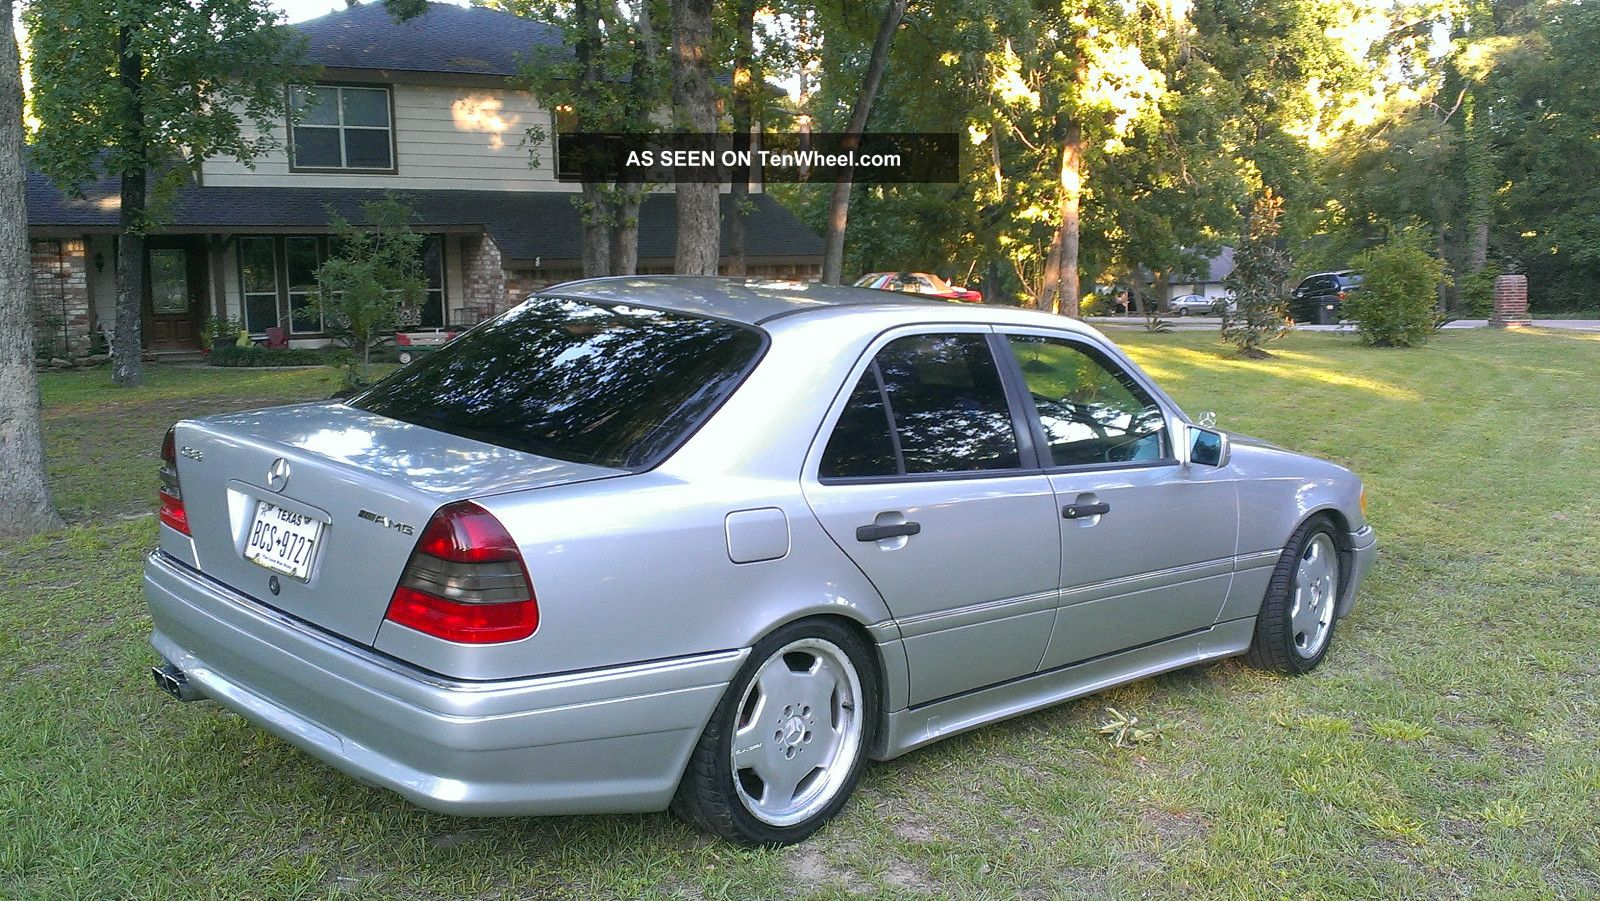 C36 Wiring Diagram W Factory Radio Schematics Org Forums C Mercedes Benz C180 Diagrams Ford F Images Furthermore 1995 Amg Wire Harness And